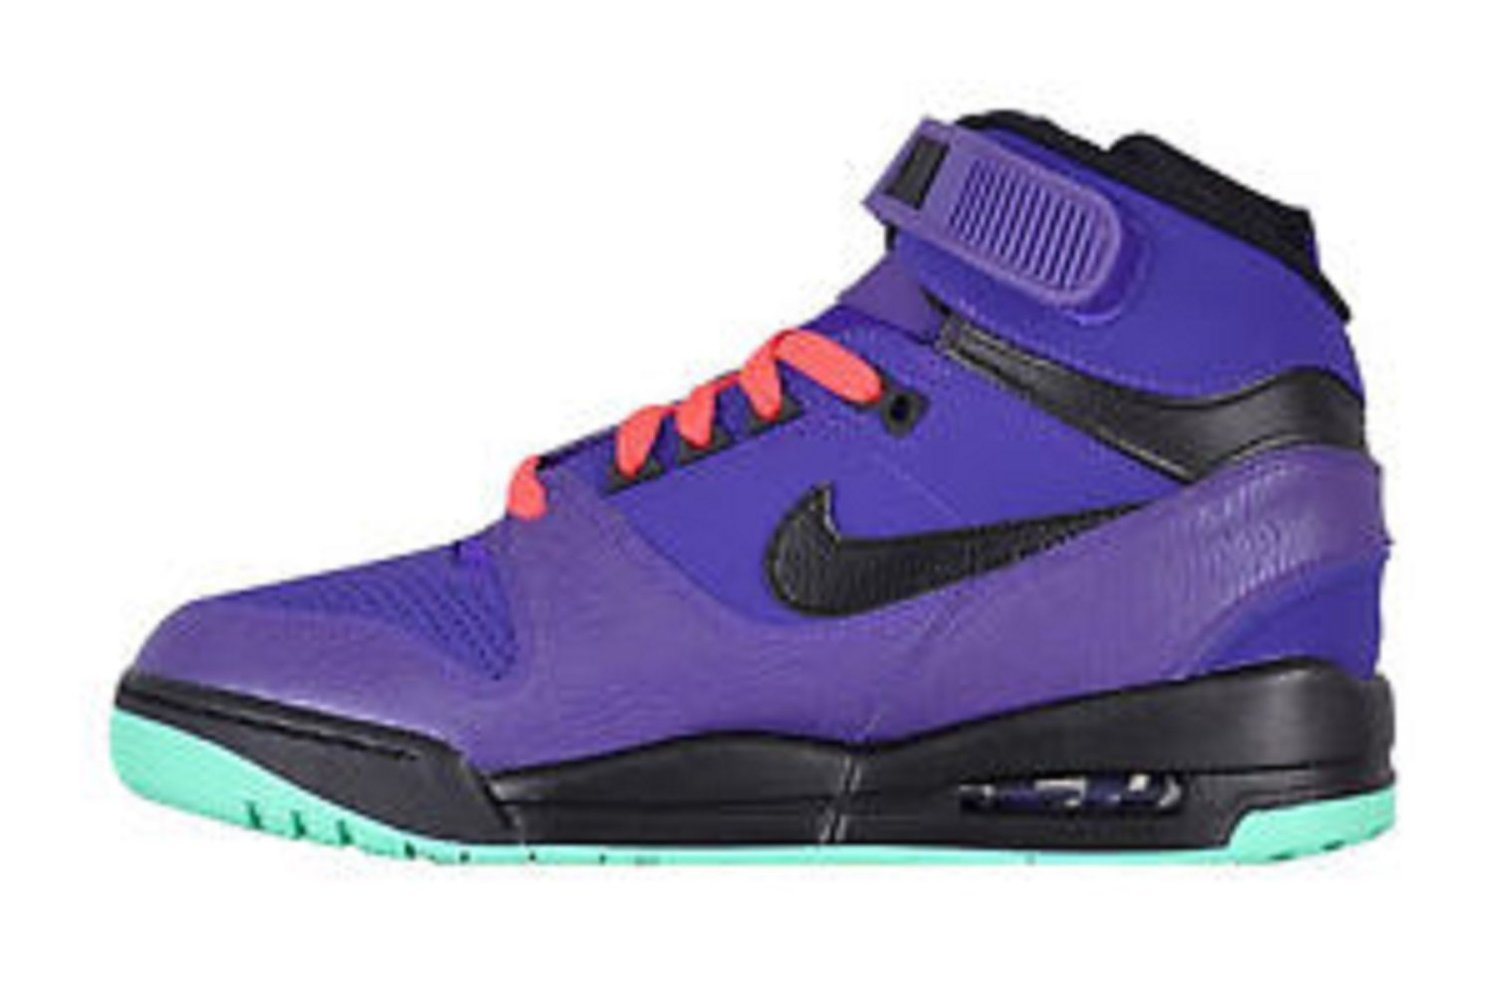 pretty nice 7d4cb 35f83 Get Quotations · Mens Nike Air Revolution Basketball Shoes 599462-500 purple teal black  size 11.5